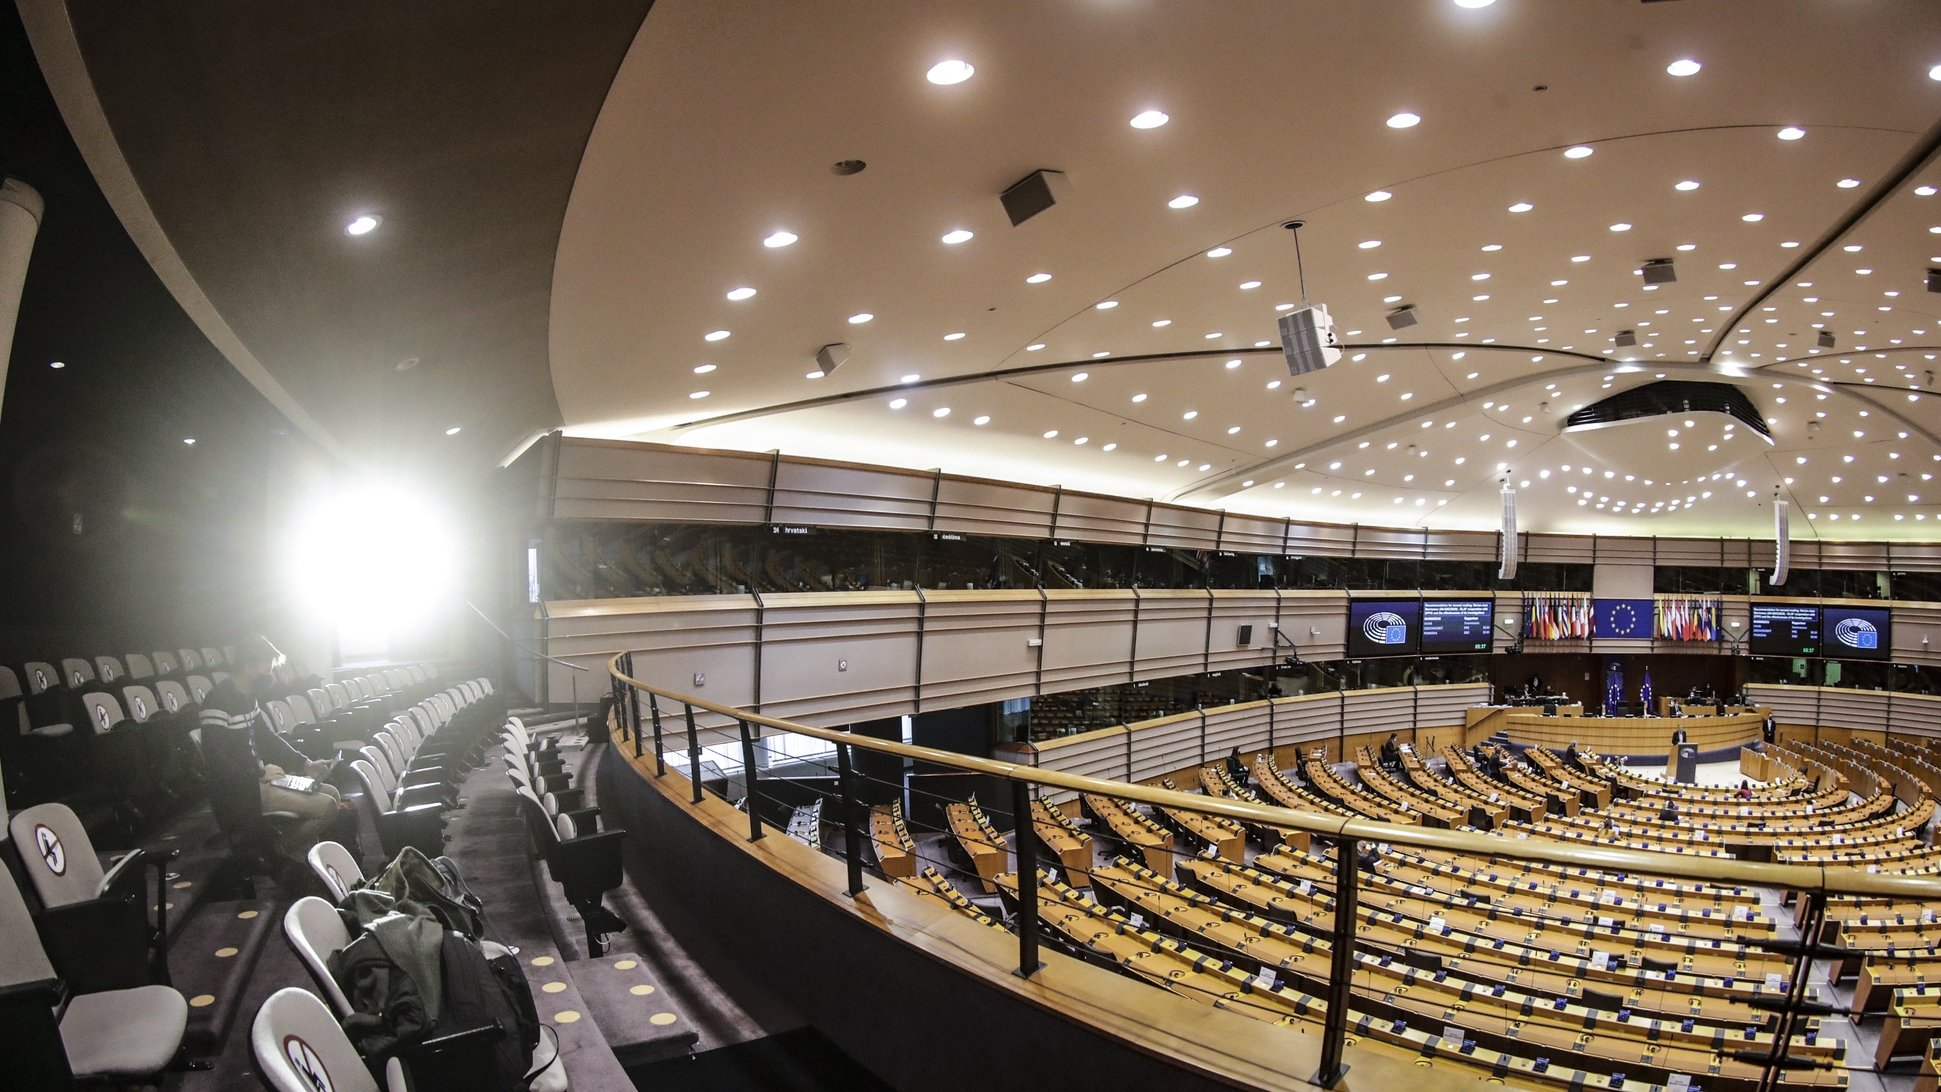 epa08889340 The morning sun makes its way through a door during a debate on Climate change during a plenary session of the European Parliament in Brussels, Belgium, 17 December 2020.  EPA/OLIVIER HOSLET